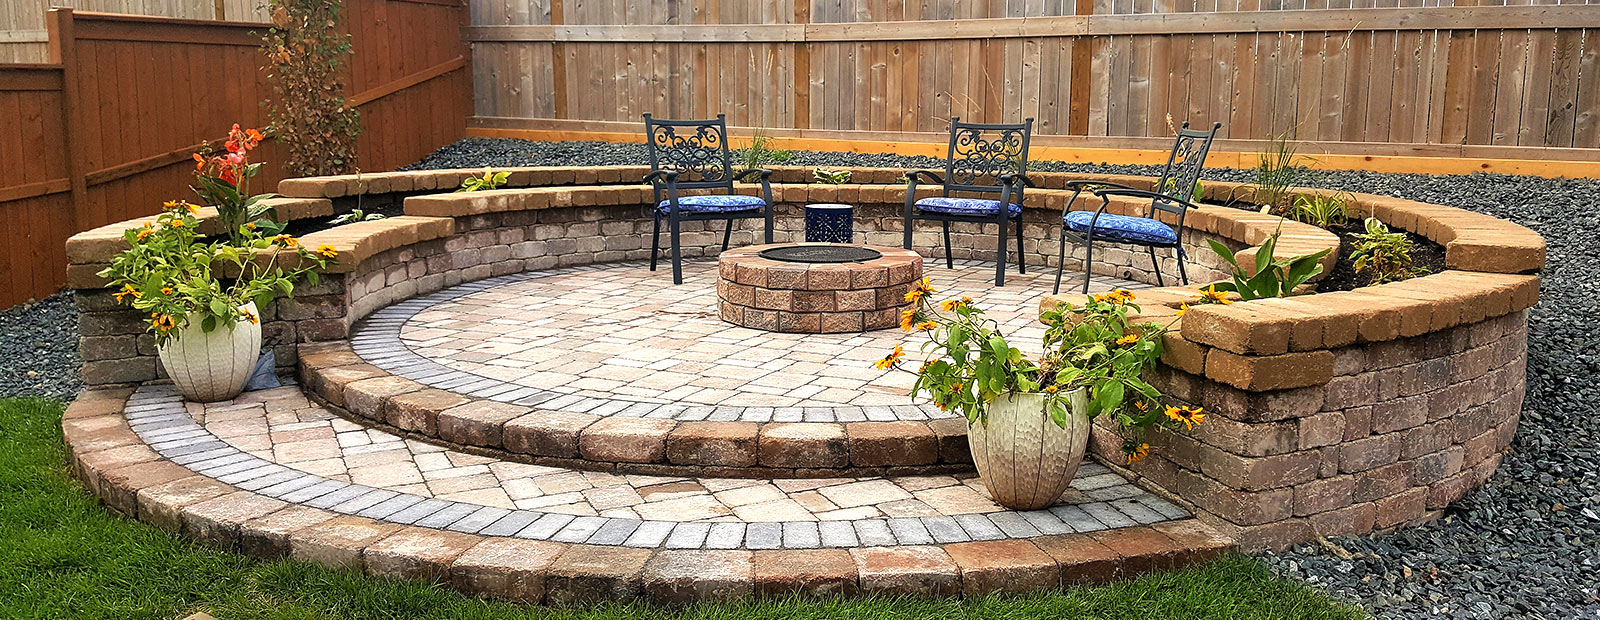 outdoor living - Winnipeg landscaping and hardscaping